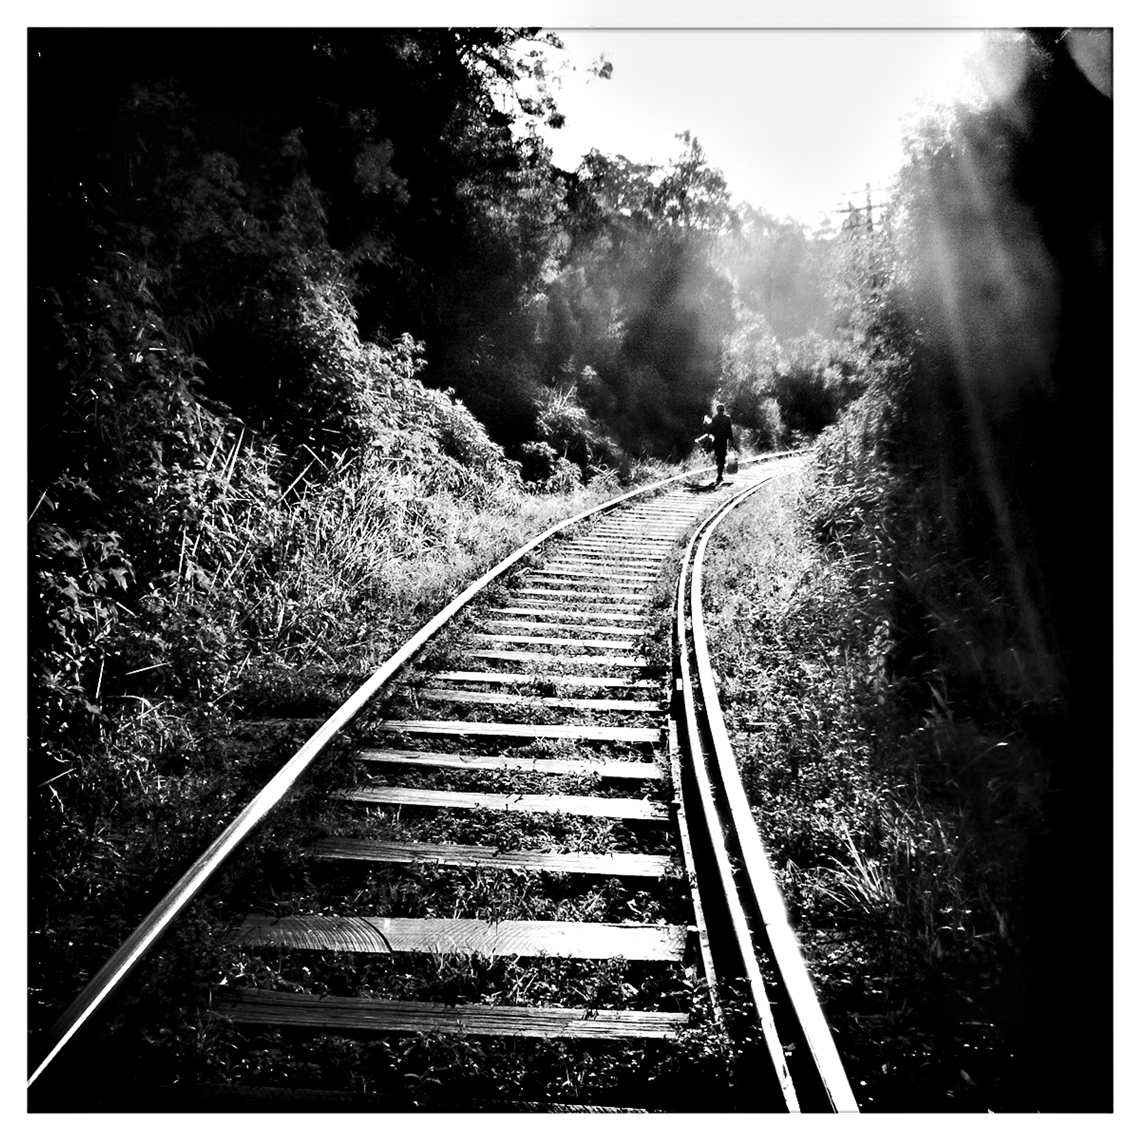 Jon Wyatt Photography - Railway tracks, Sri Lanka. Hipstamatic